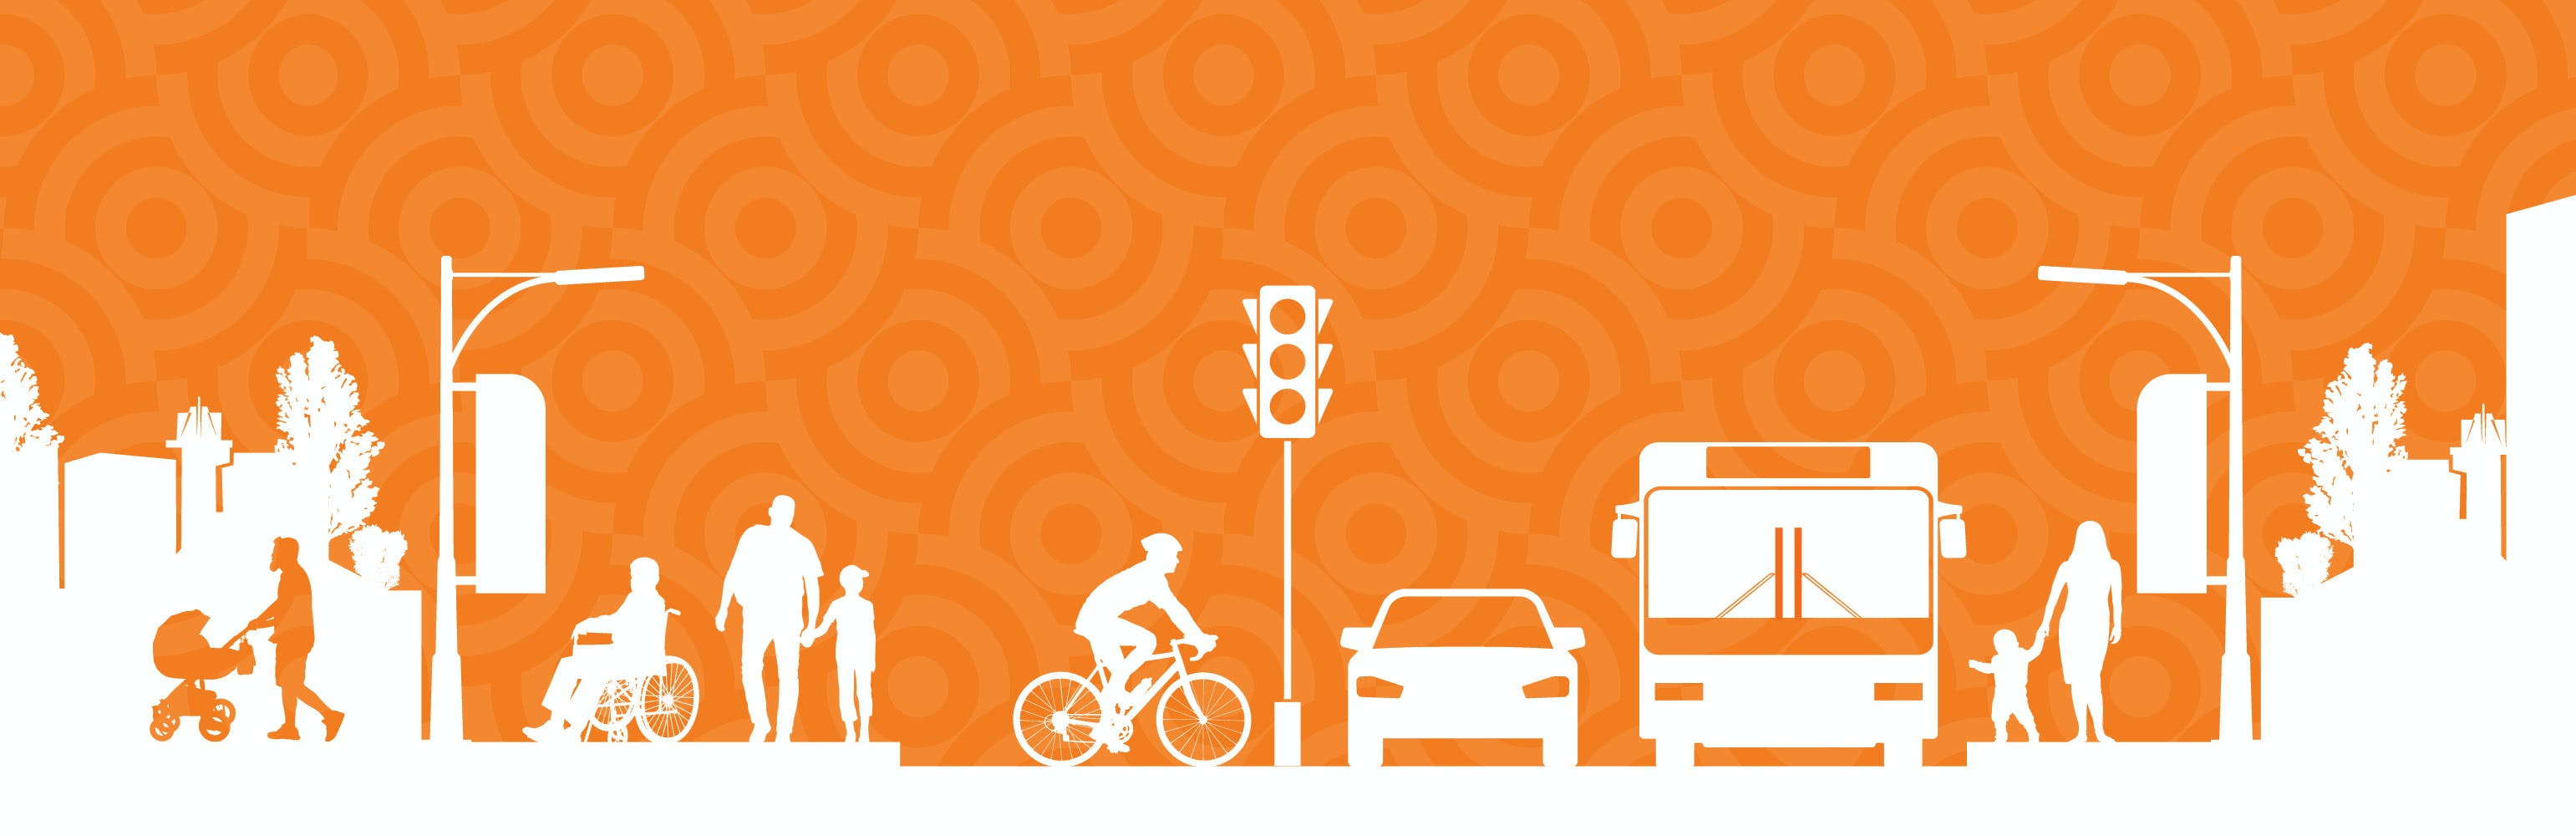 This is a graphic illustration of multi-modal mobility in a city.